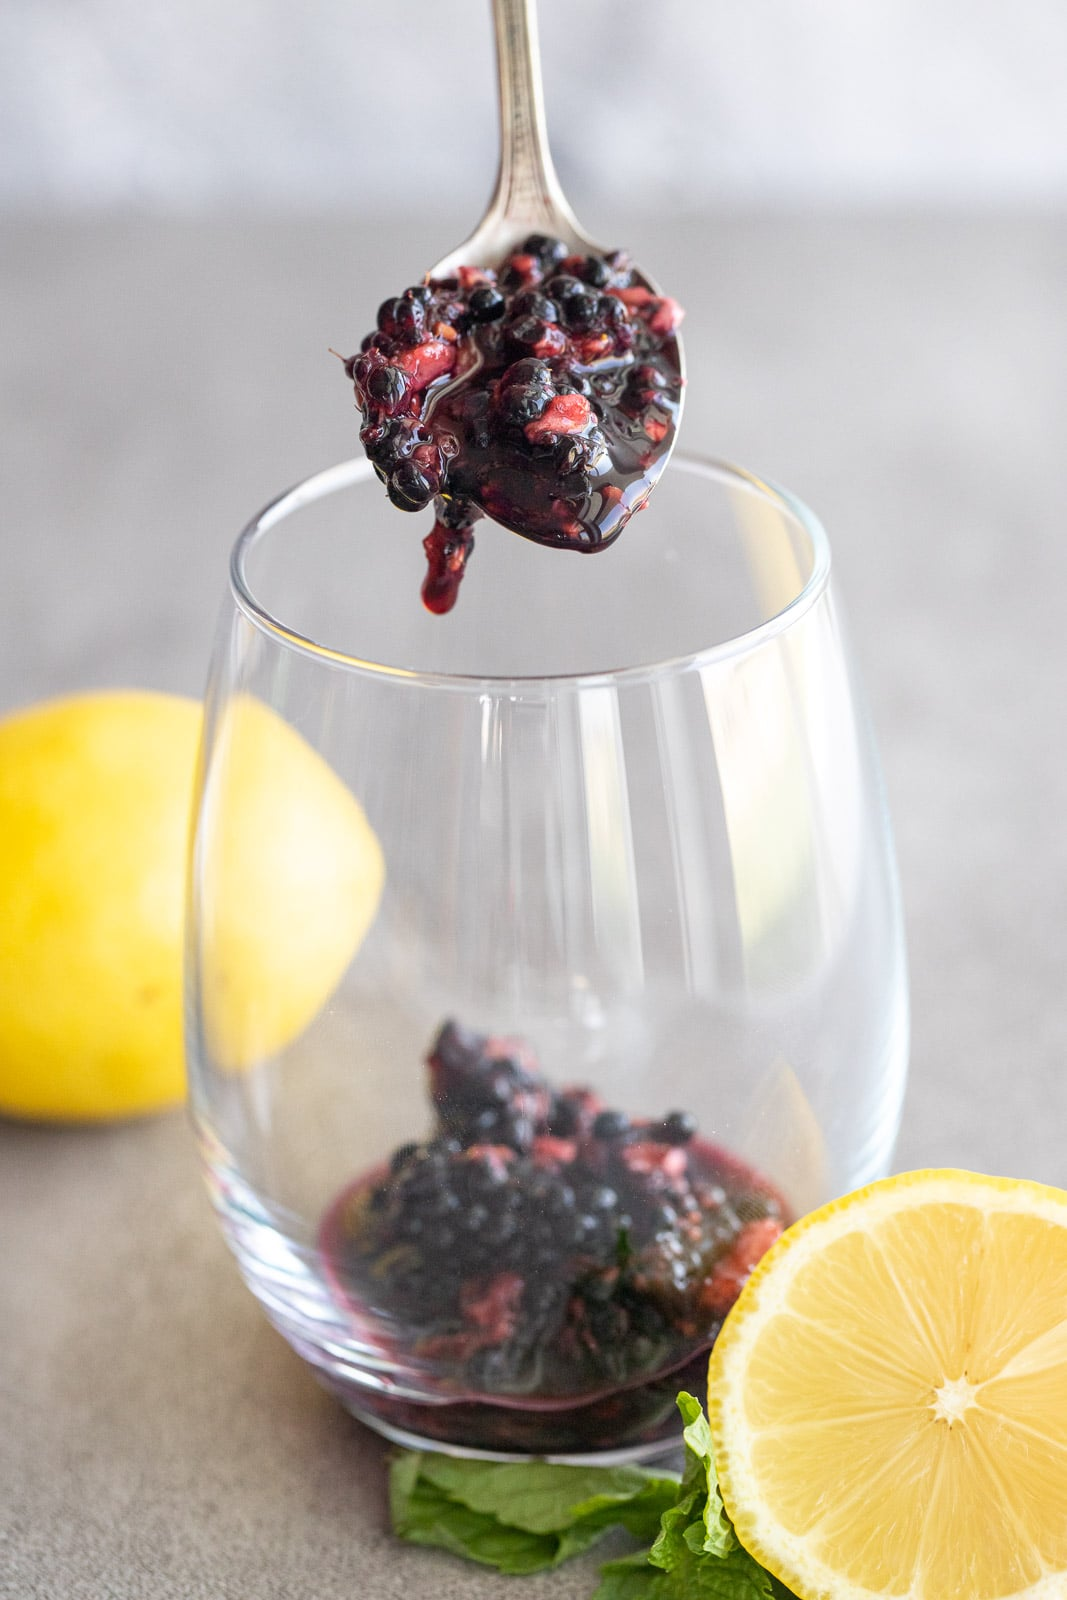 woman spooning a blackberry mix into glass cup.